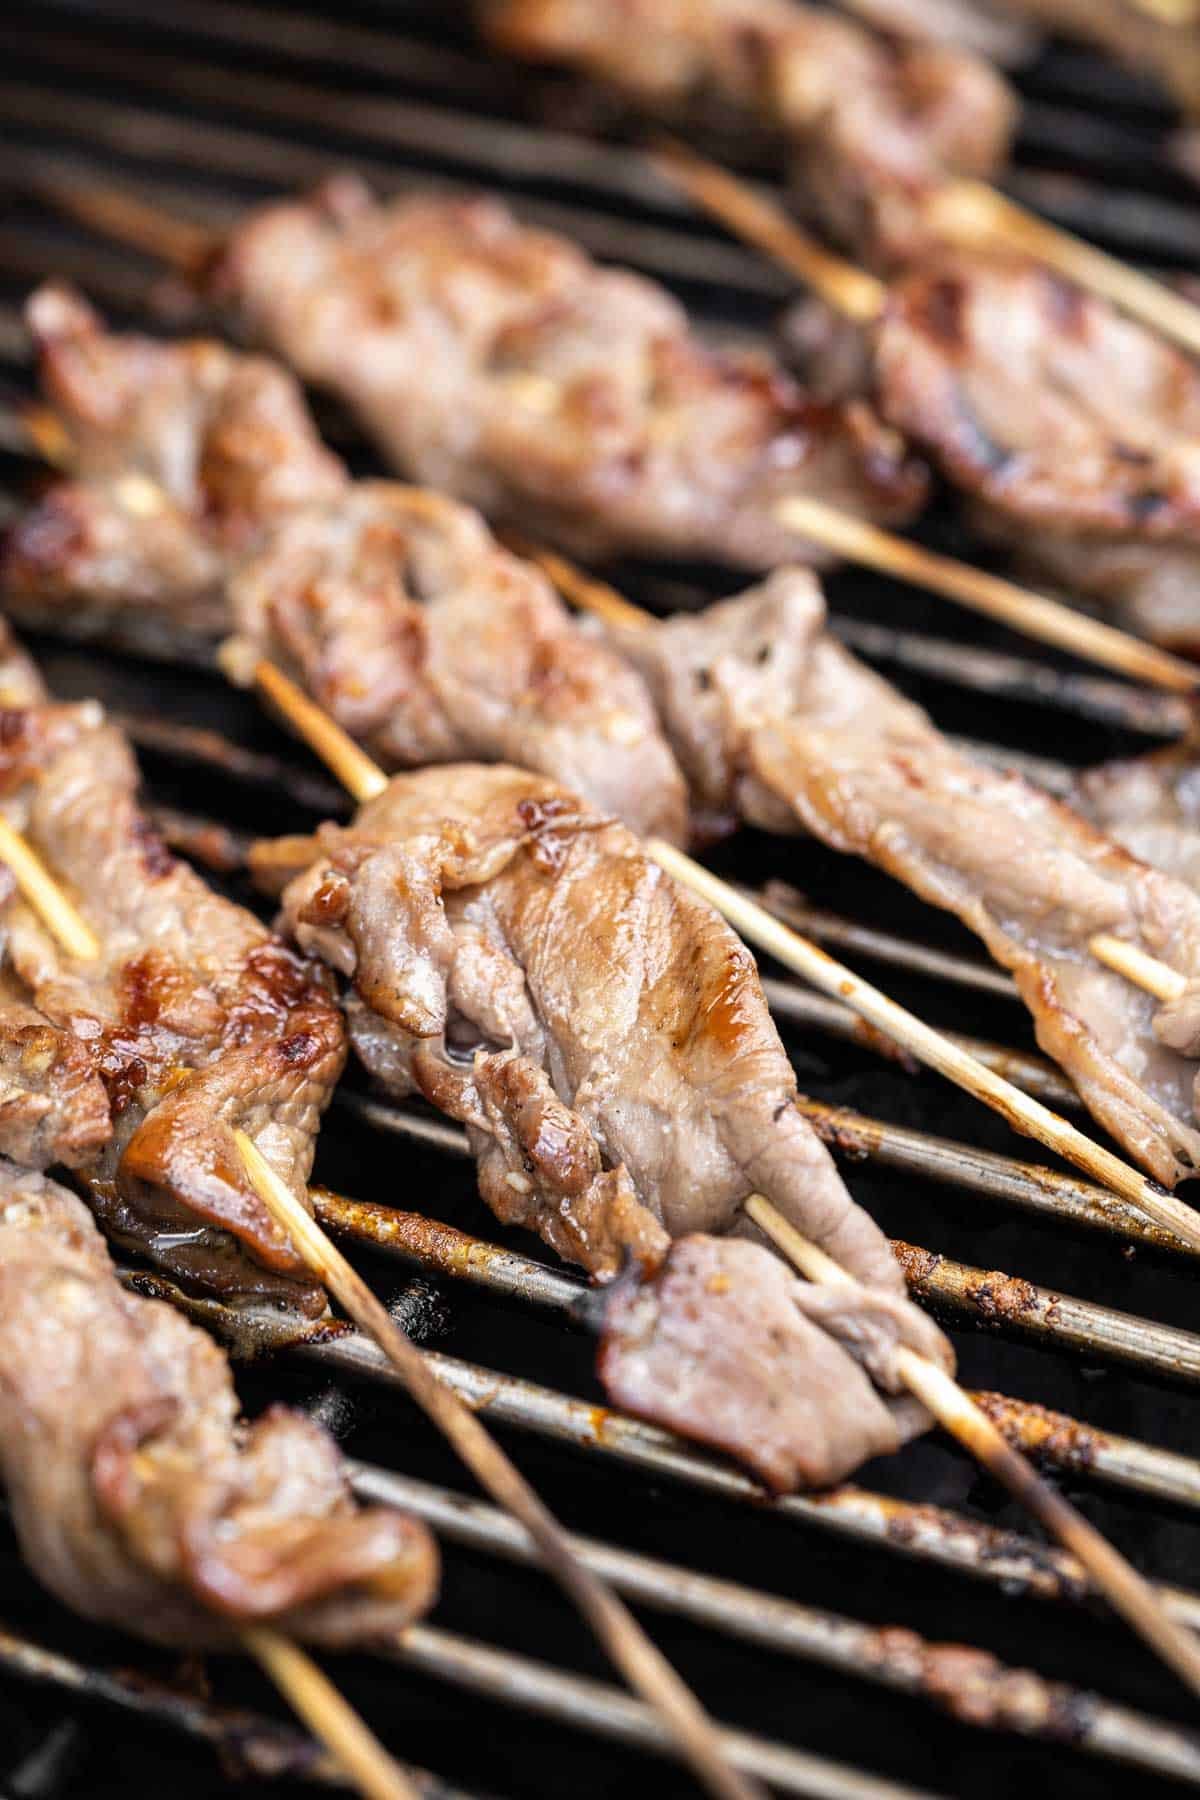 grilling skewers of steak on a gas grill